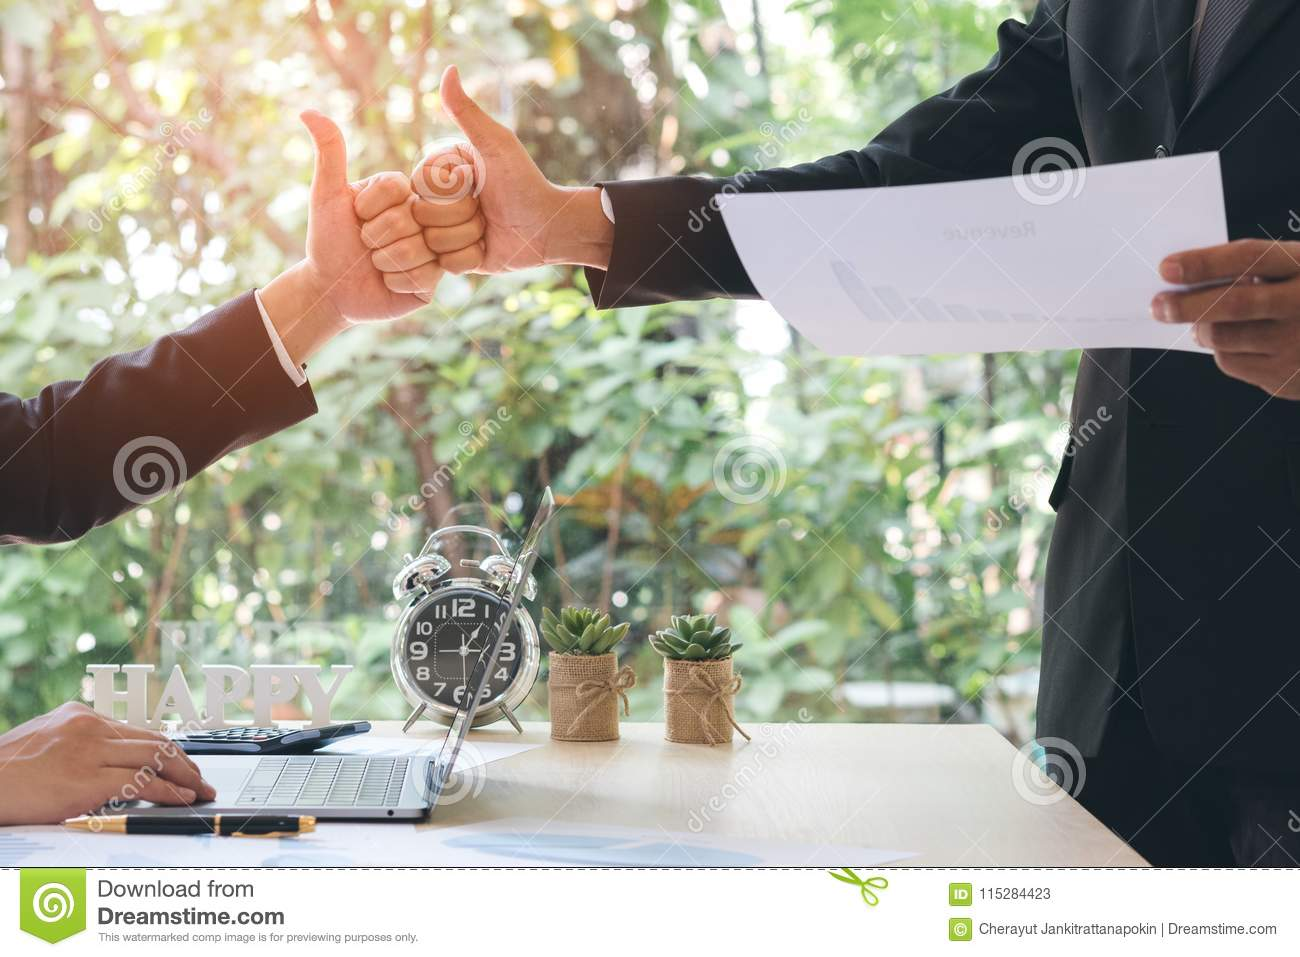 Success businessman partners making fist bump and thump up showing trust in team after achieving goals in office with laptop, doc